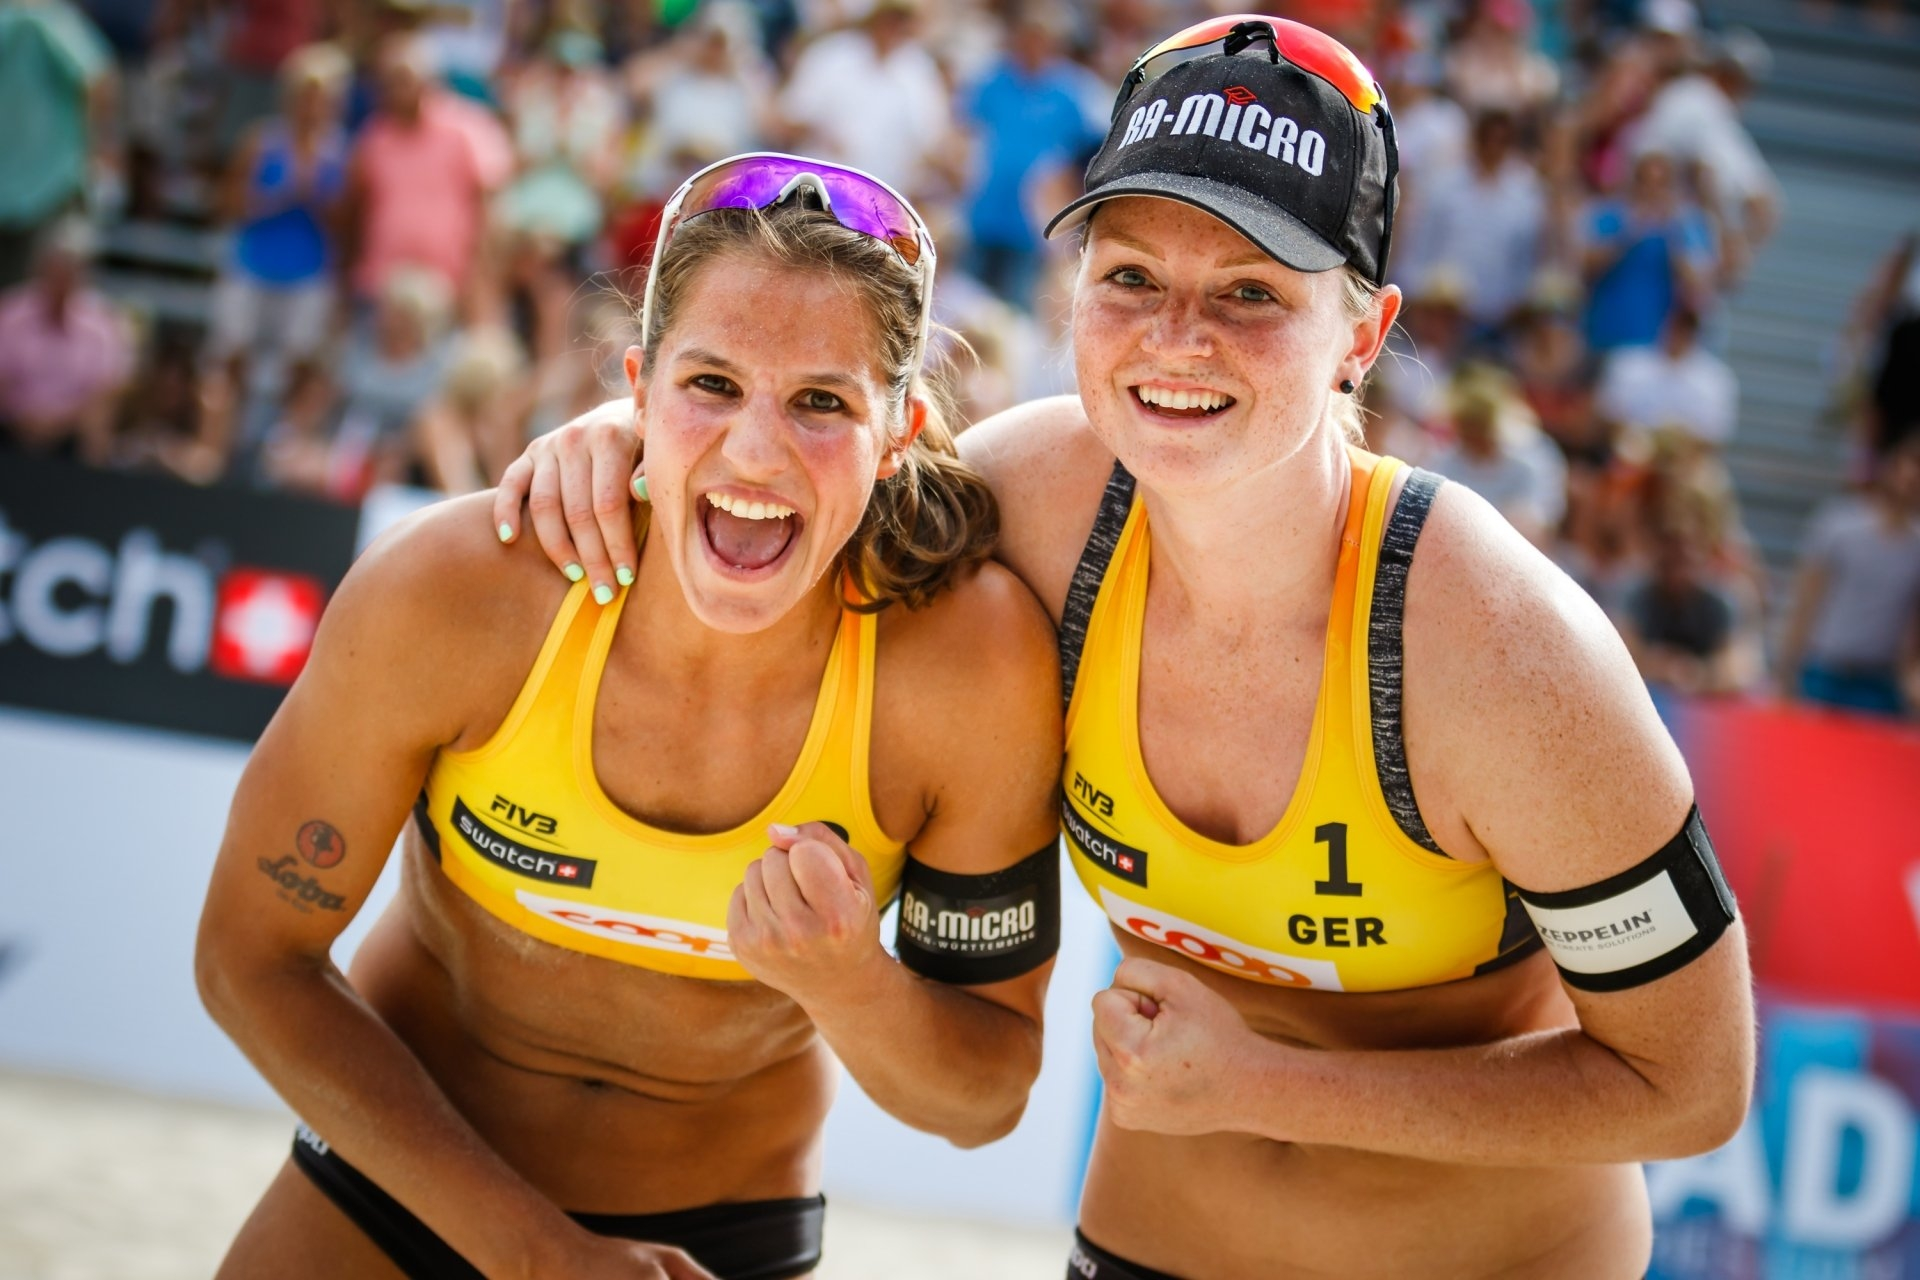 Laboureur and Sude climbed to the top of the world rankings for the first time on their careers